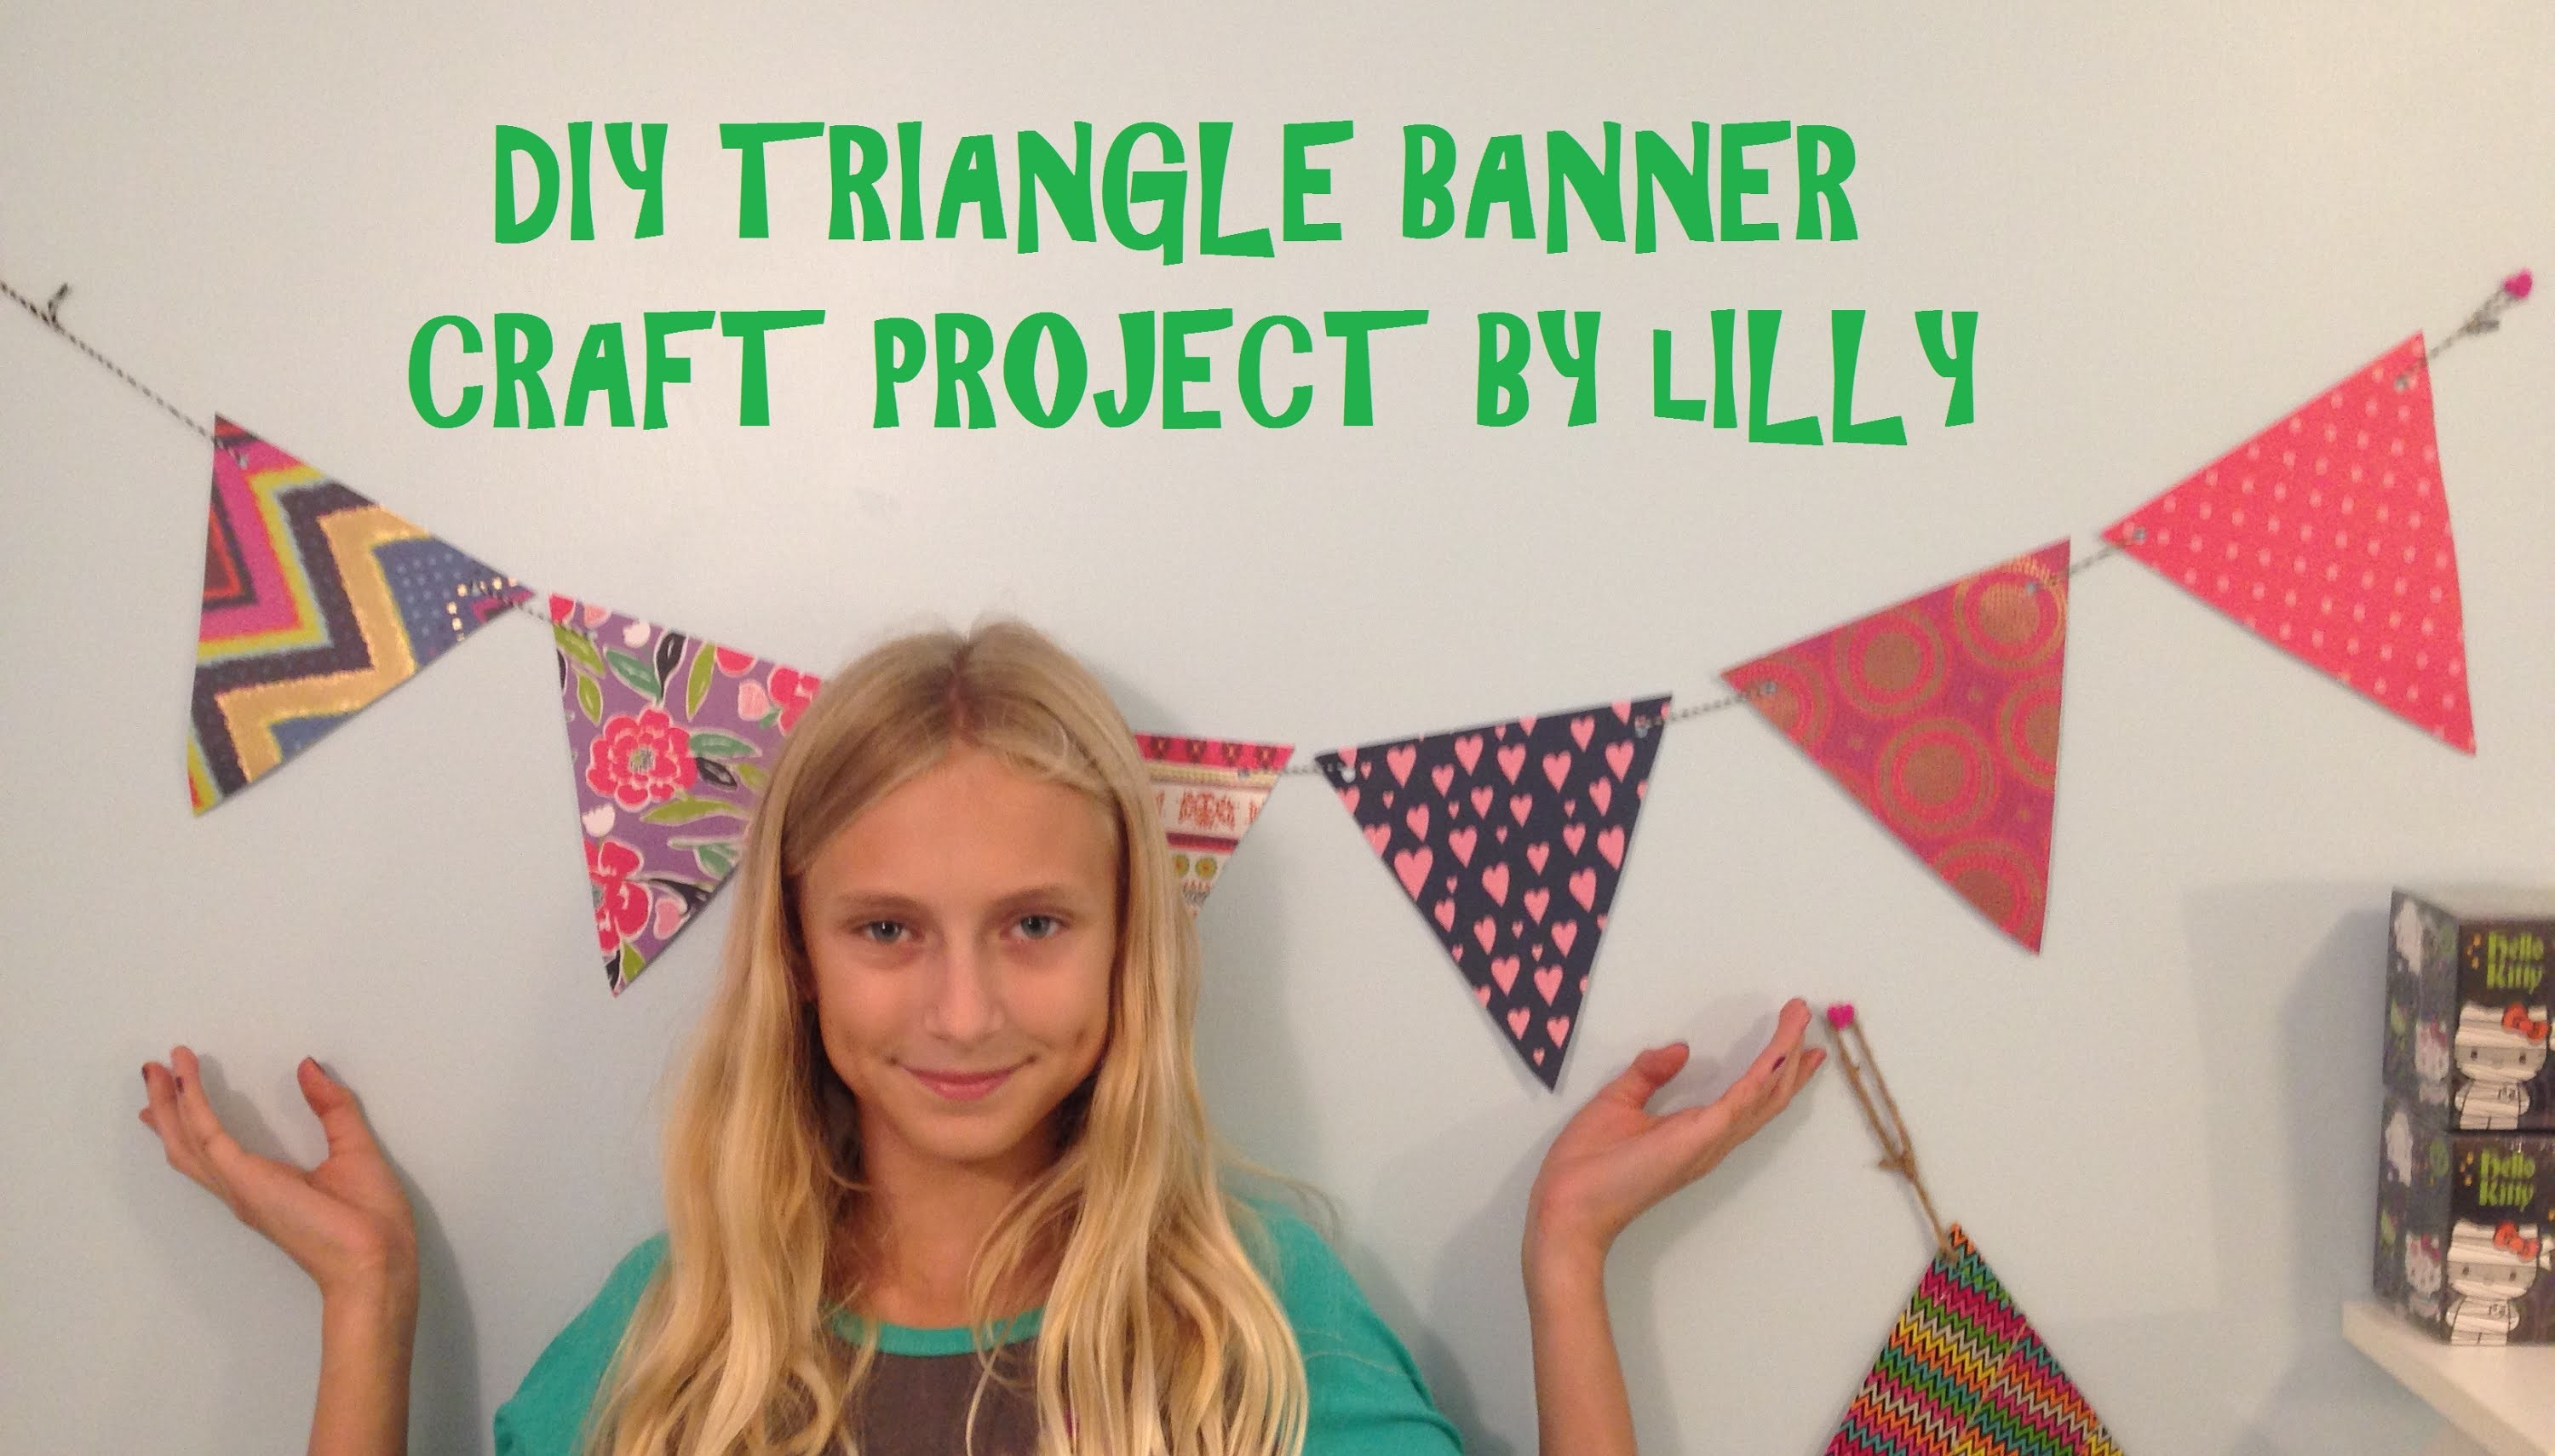 DIY Triangle Banner Craft Project How To Video